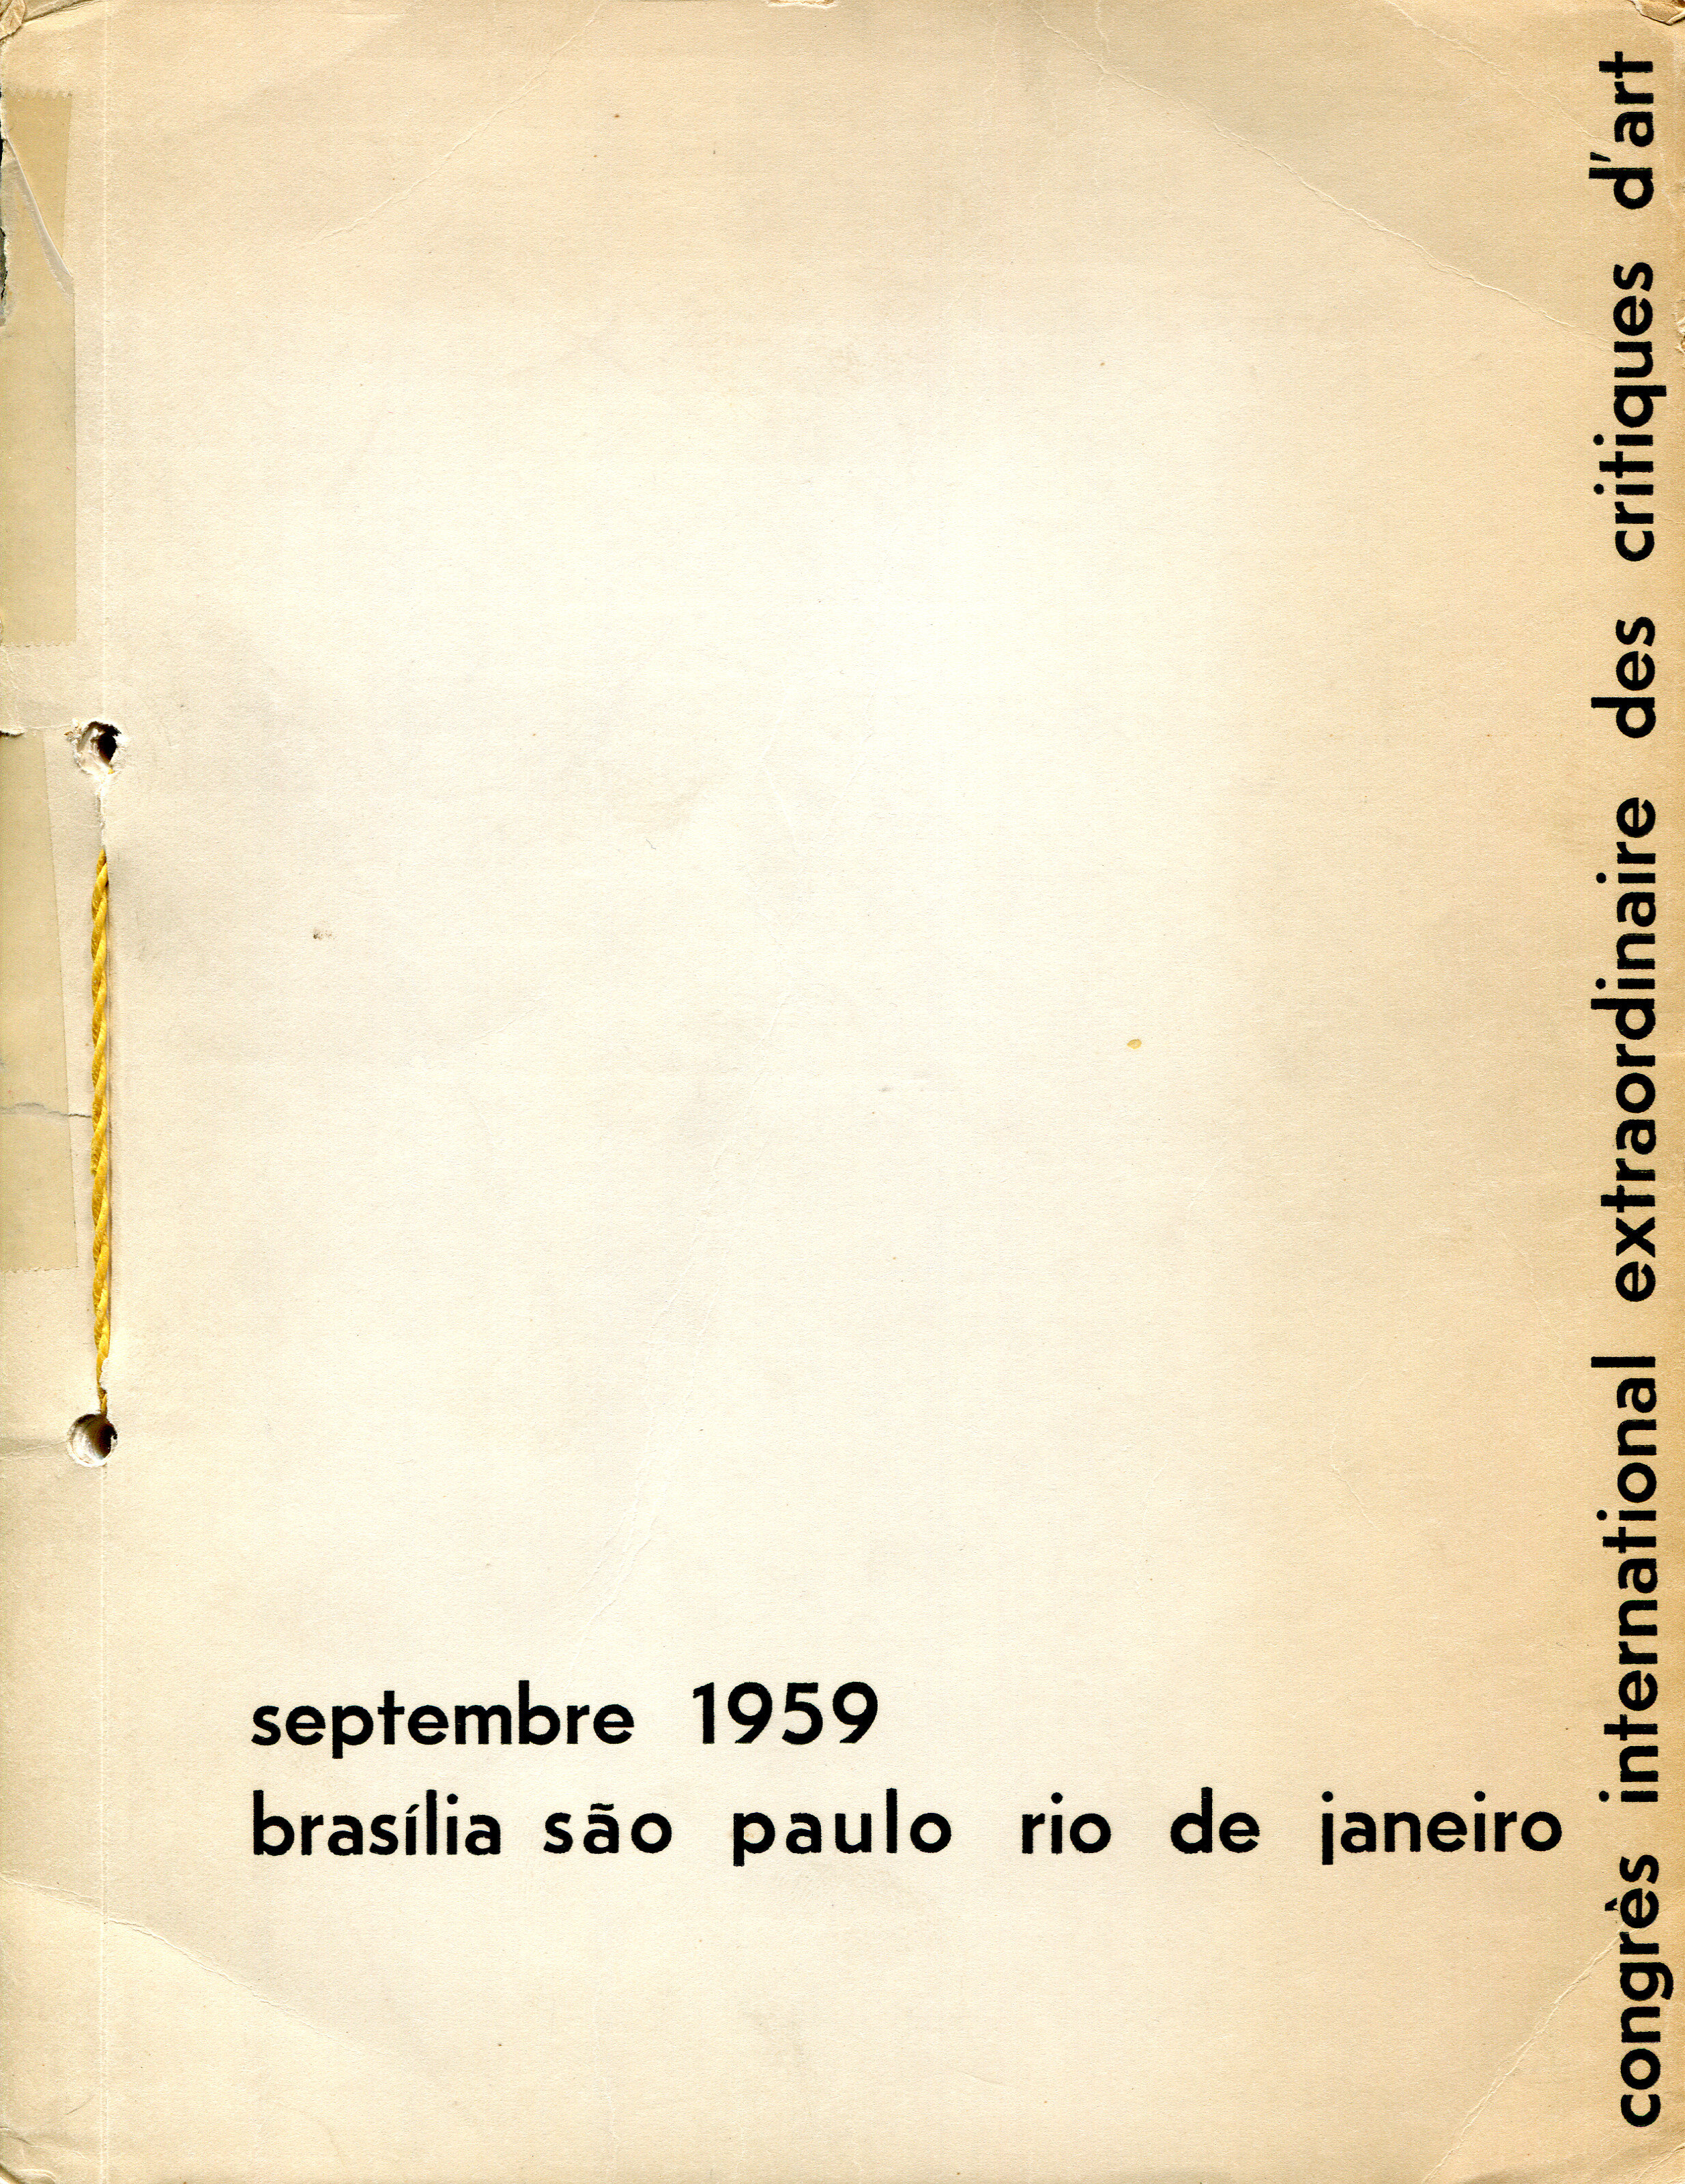 Ecole D Architecture De Brest the origins of the brazilian association of art critics and